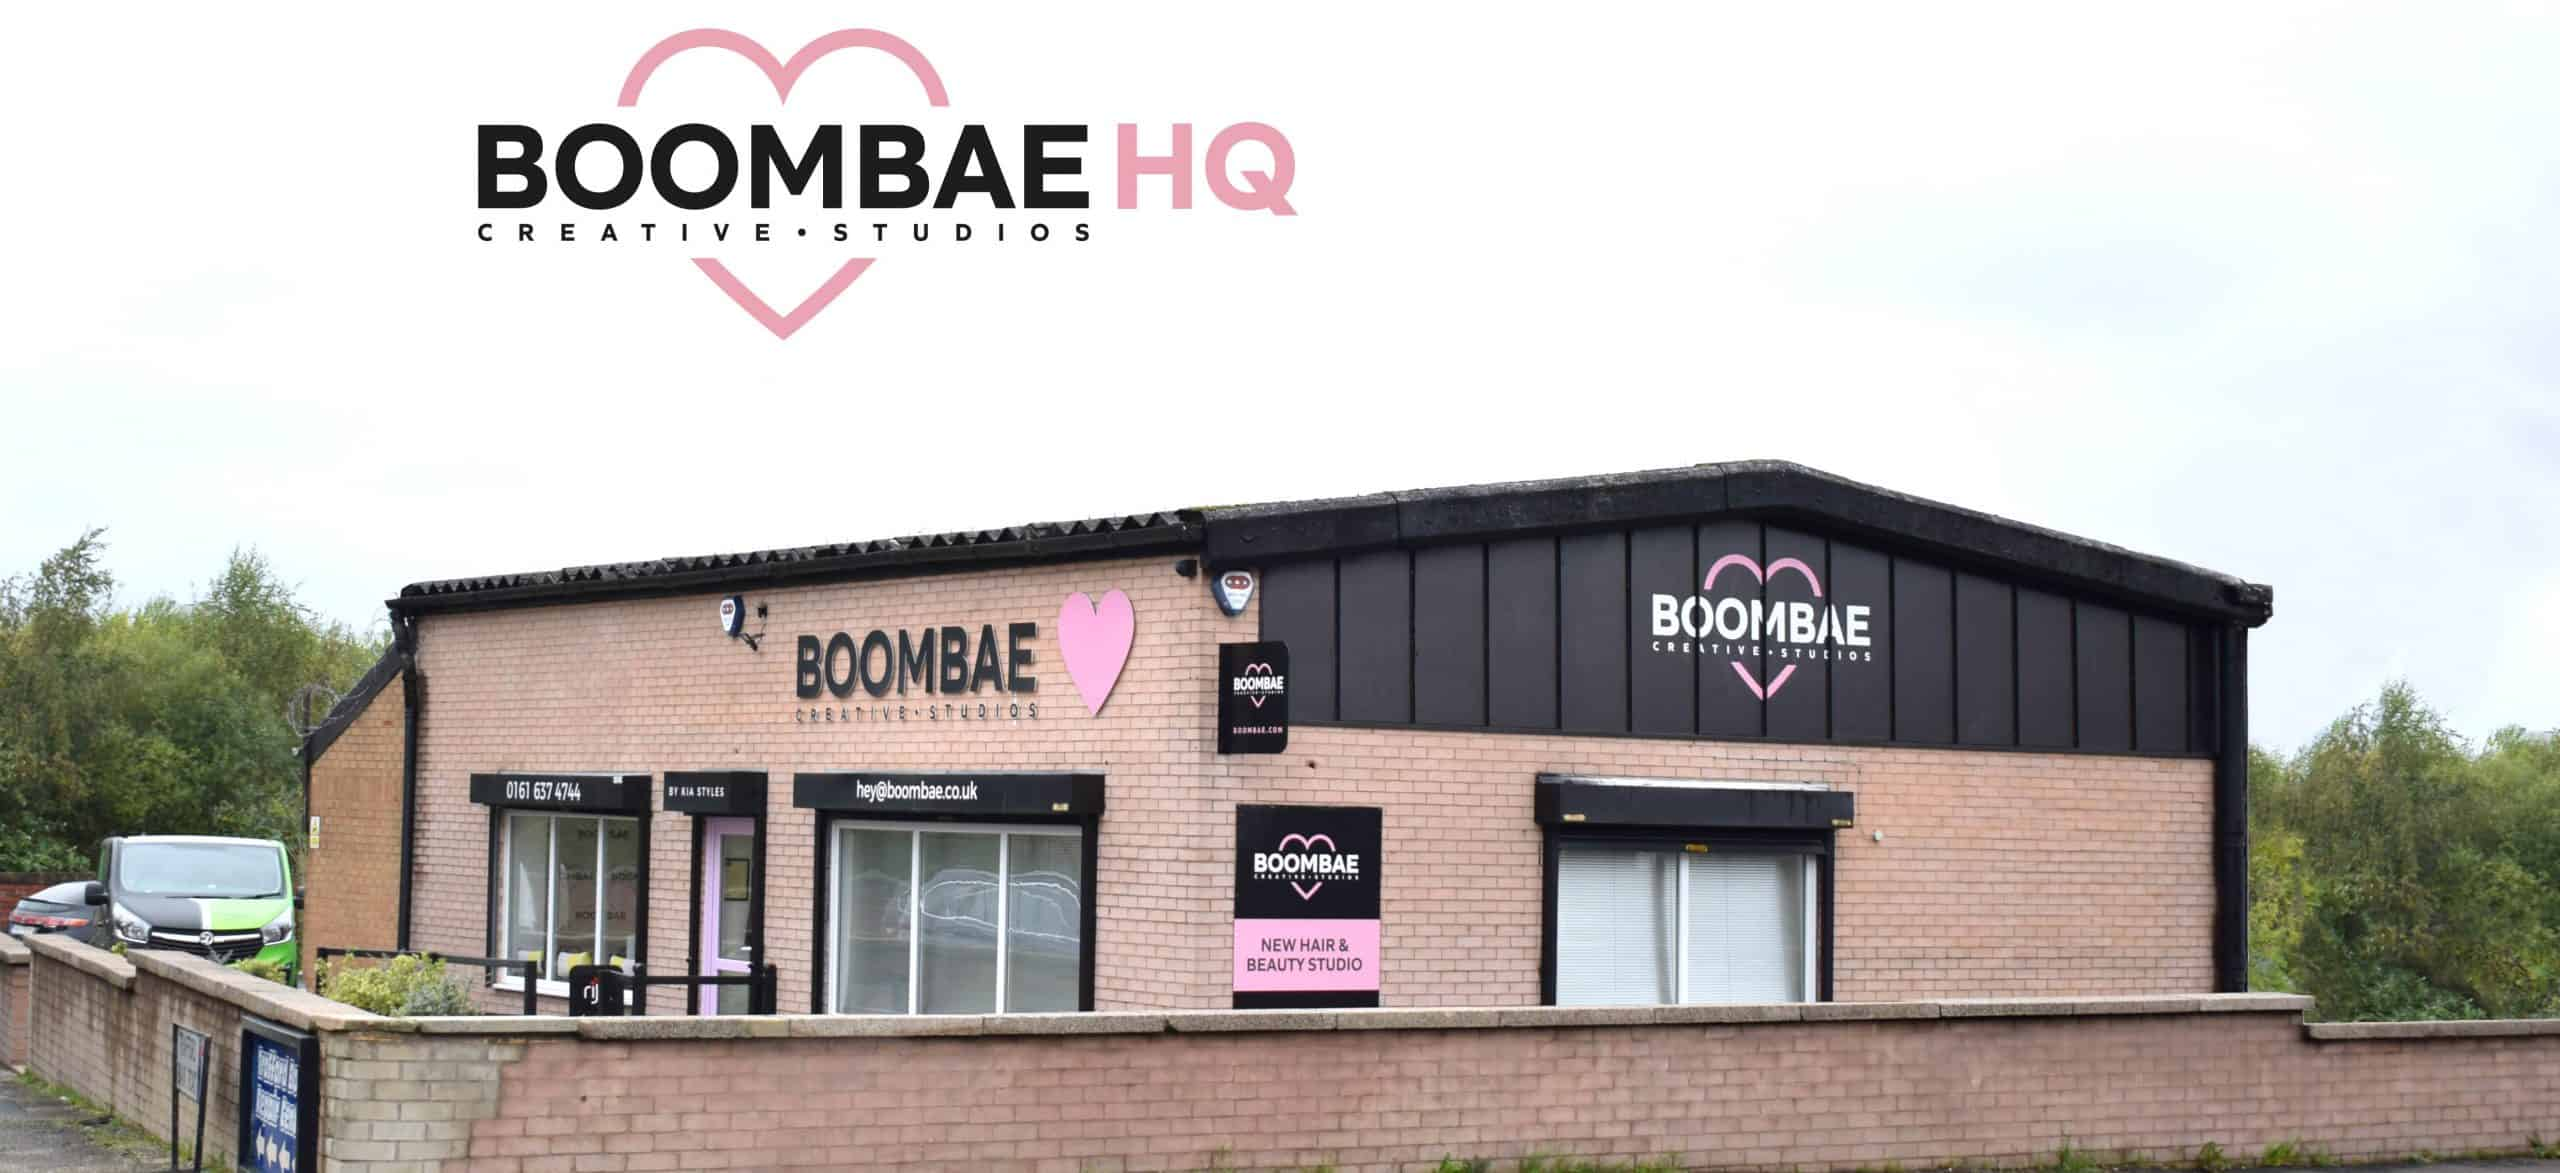 Boombae Headquarters building